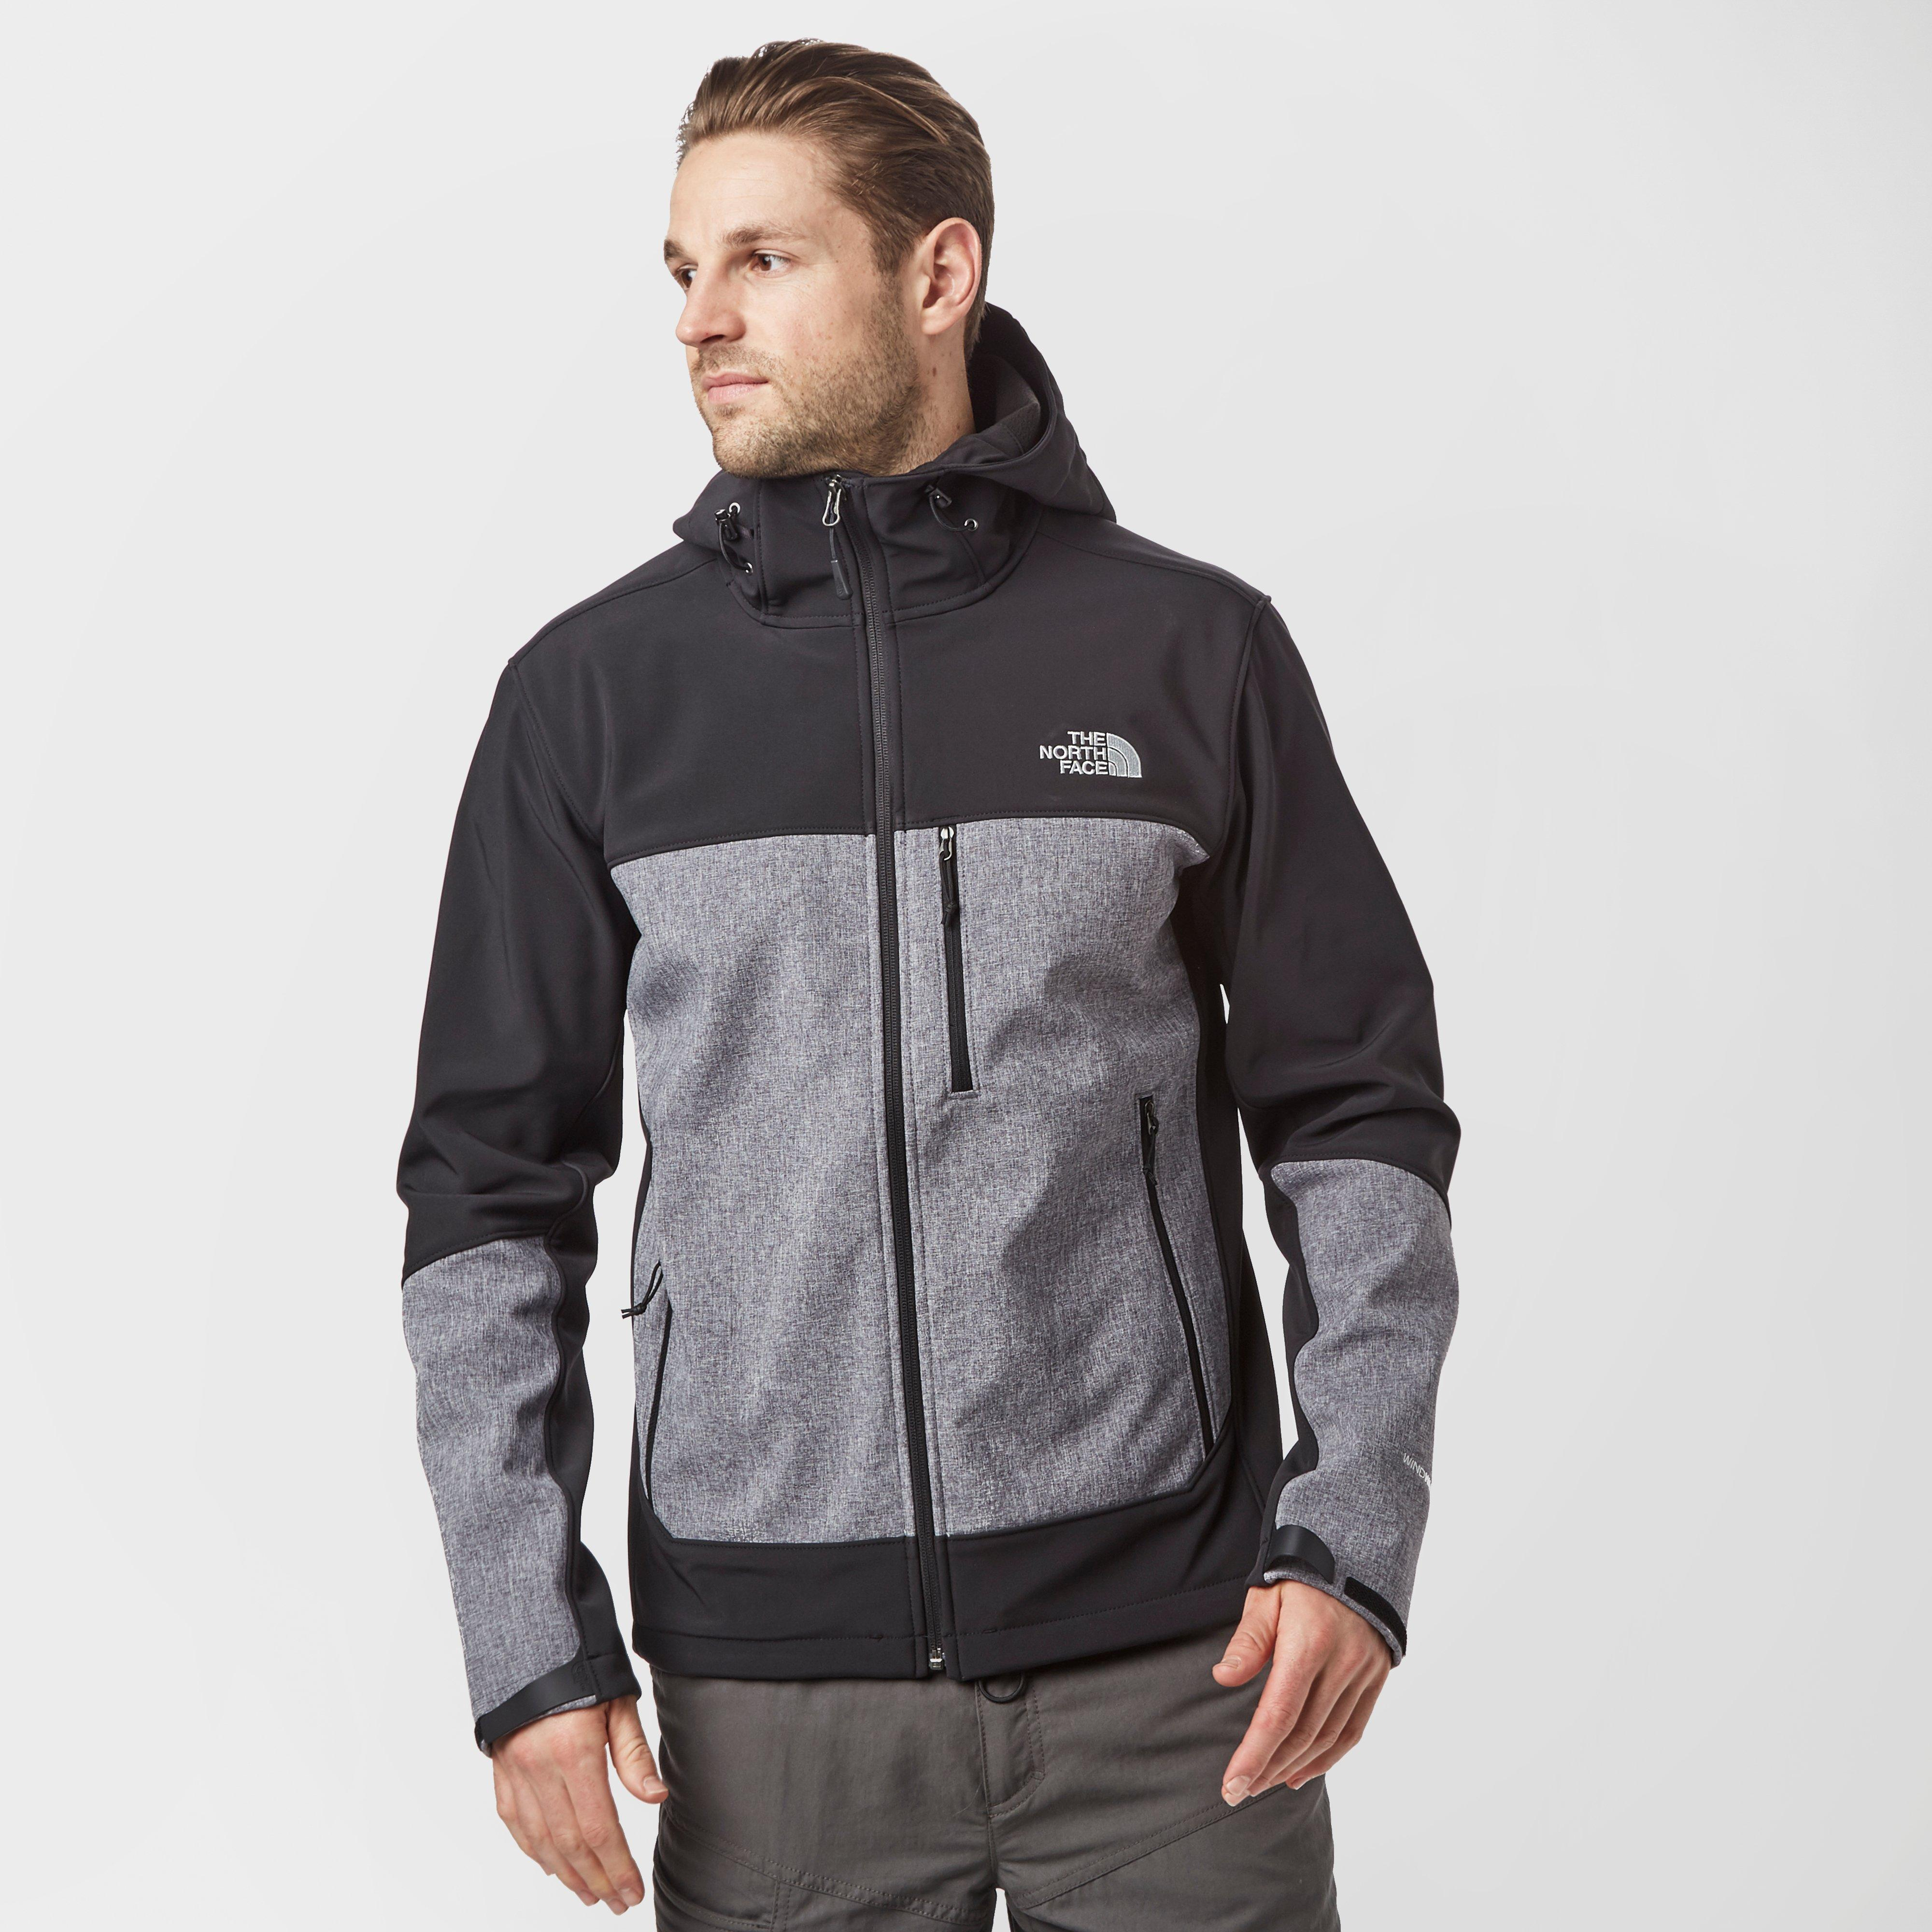 cfa7adf6c2 Next. scroll downscroll up · THE NORTH FACE logo